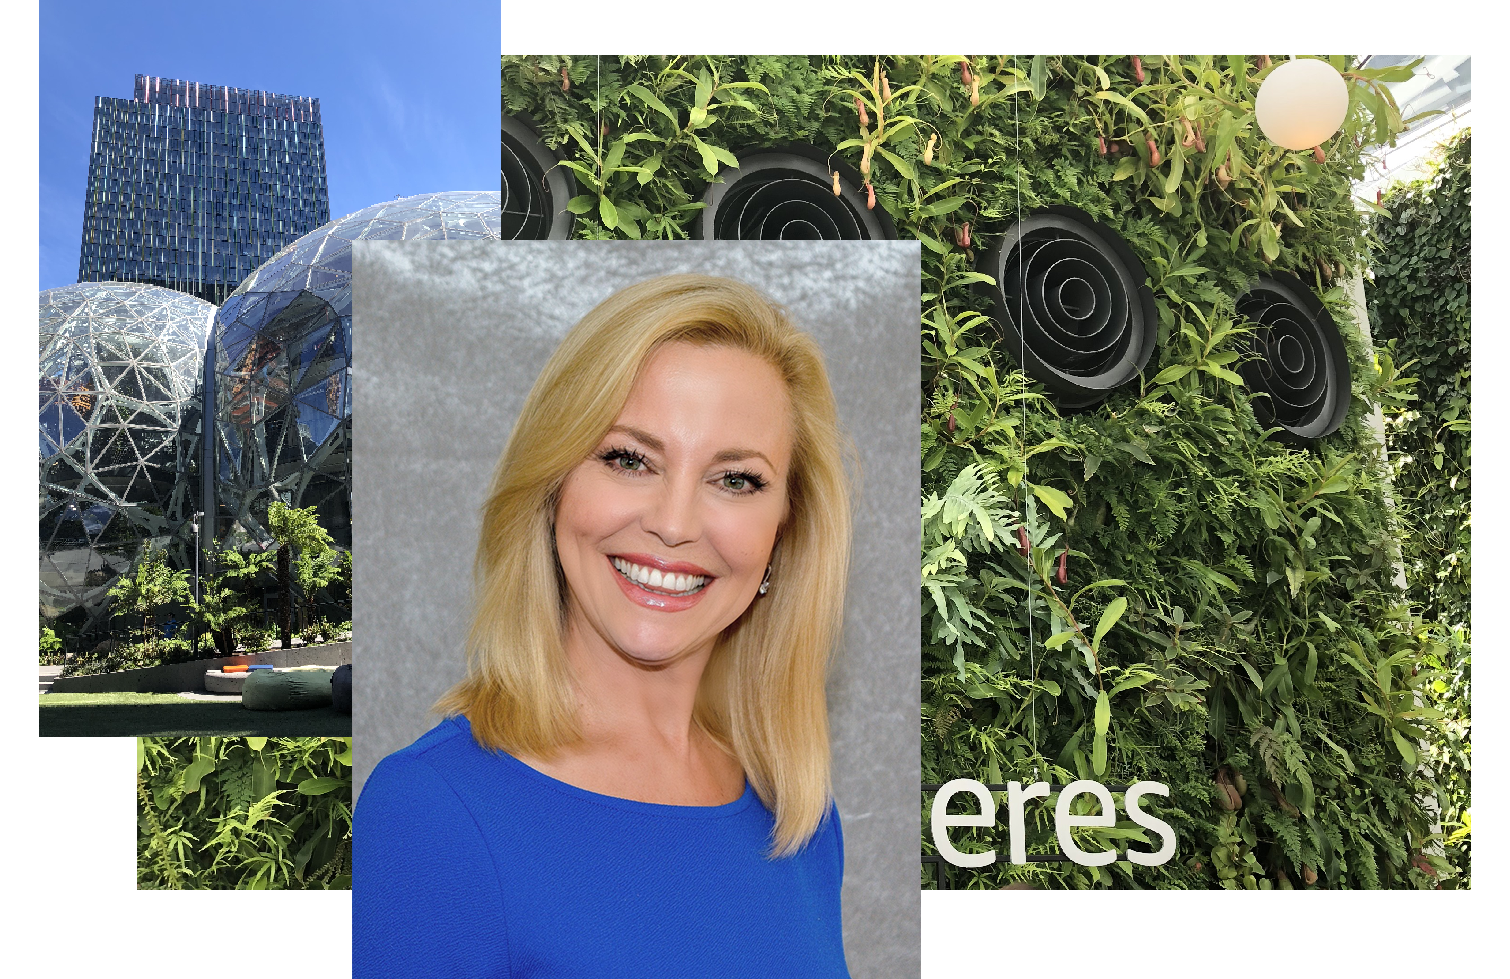 Meet Dori, yourReal Estate Professional. - Dori has been involved in every aspect of Real Estate since 1998 ranging from land acquisition, luxury new construction to residential sales, investment properties and multiple family properties. Her vast experience is your asset in every aspect of your Real Estate Portfolio. Dori has also been honored with Seattle Magazine's 5 Star Top Real Estate Professional for Customer Satisfaction from 2009 – 2017 and number 113 in the nation.